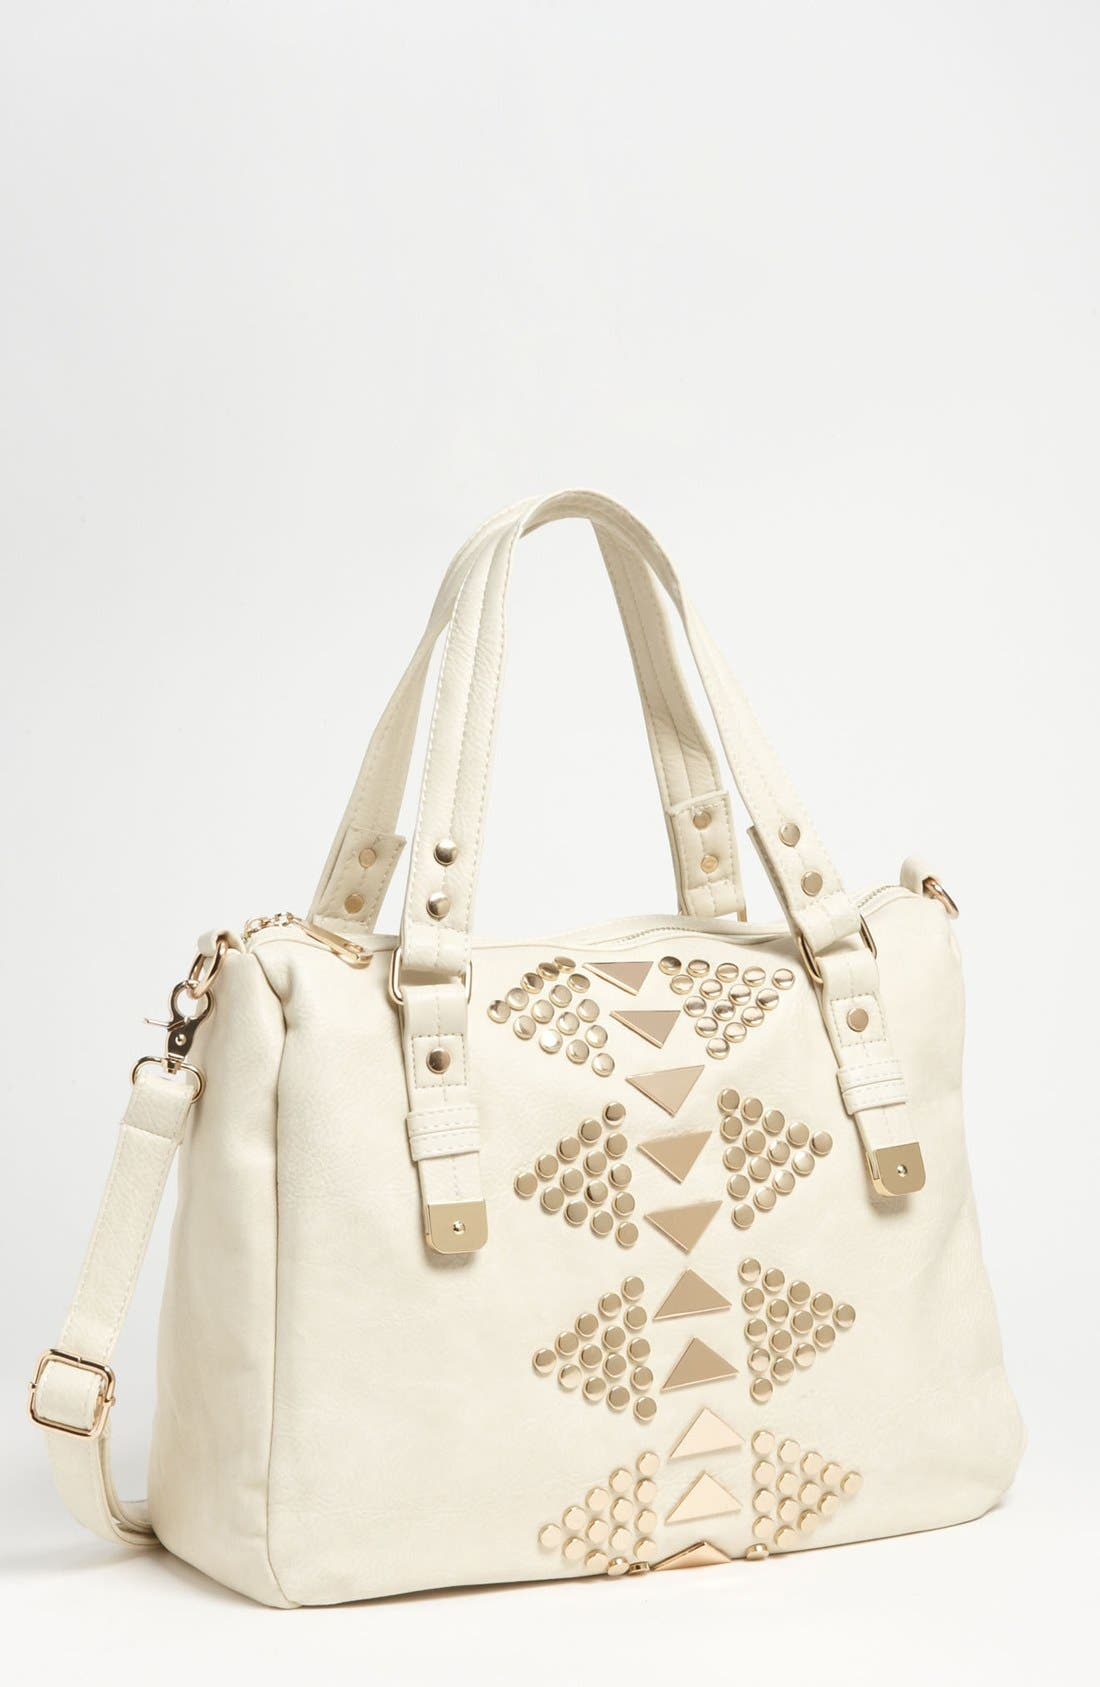 Alternate Image 1 Selected - Street Level 'Oversized' Studded Faux Leather Tote